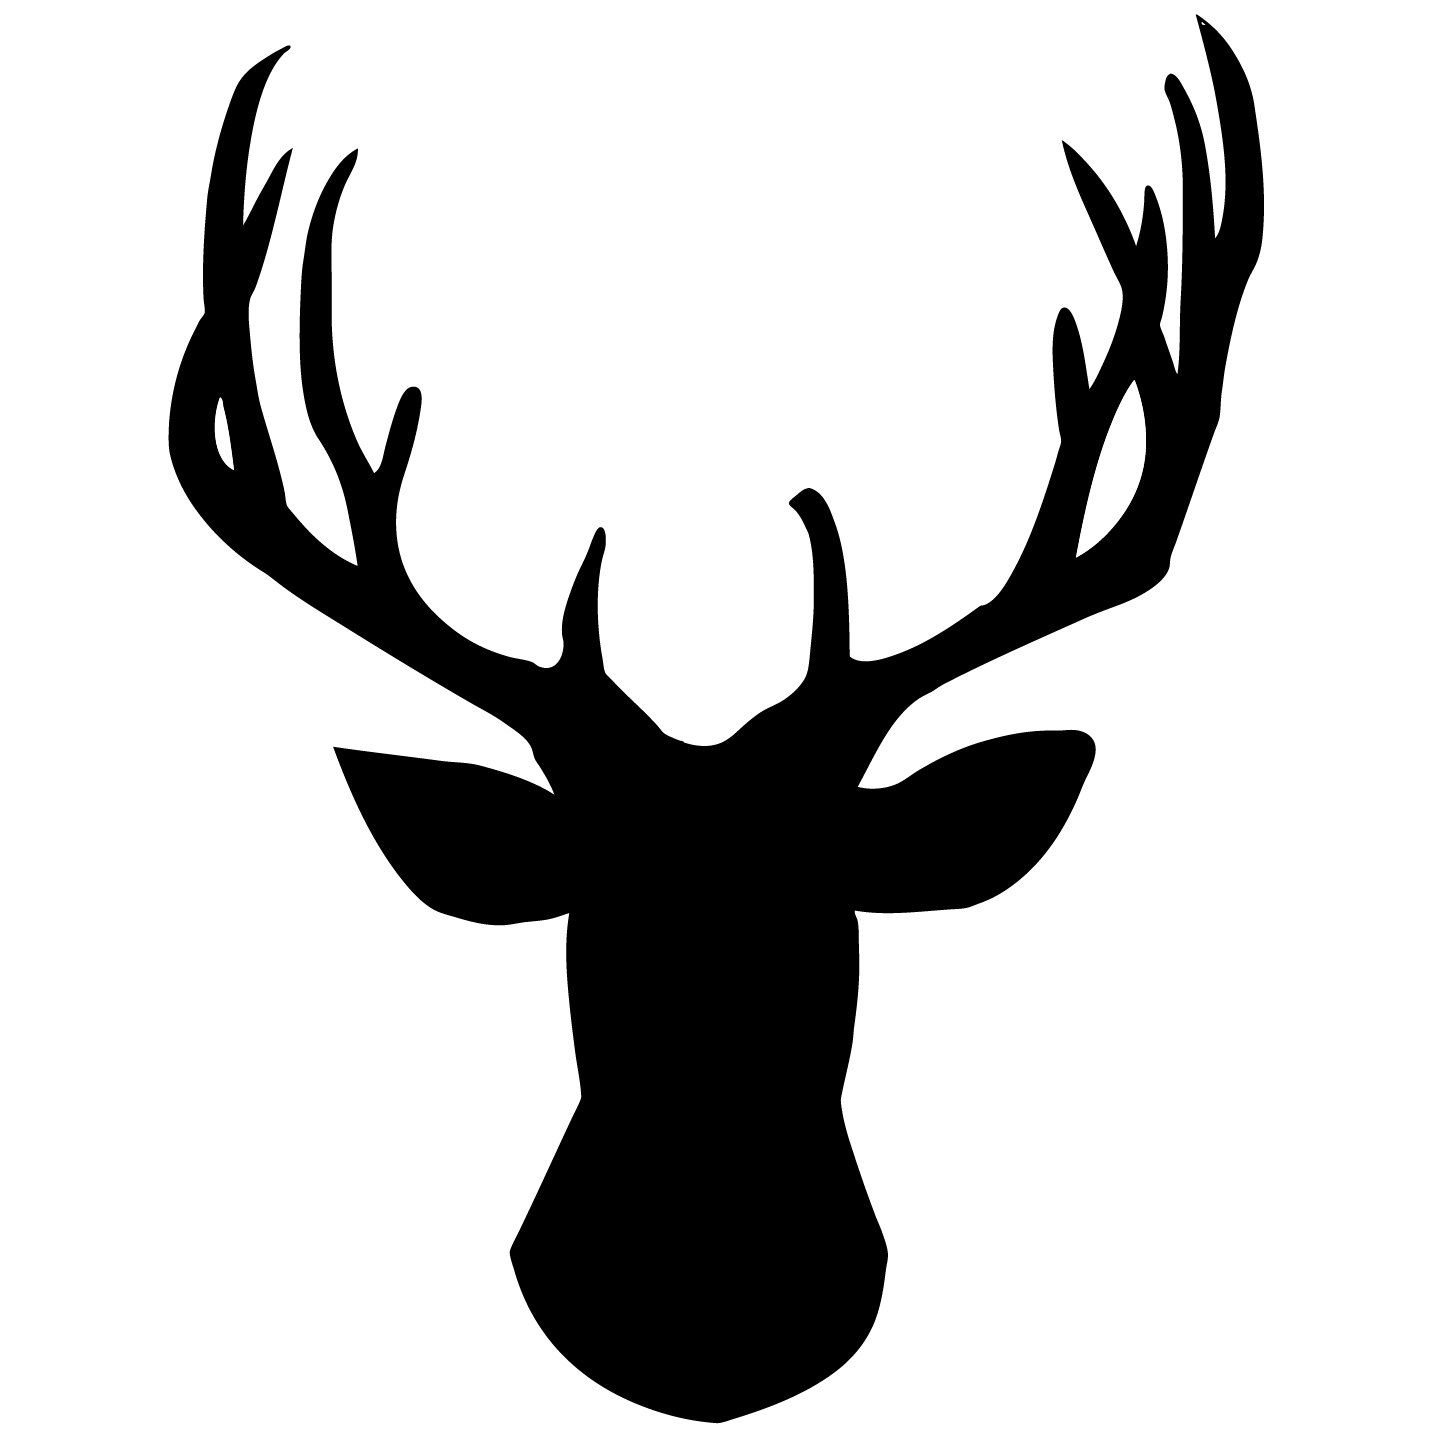 Hunting clipart stag head. Deer chalkboard wall decal